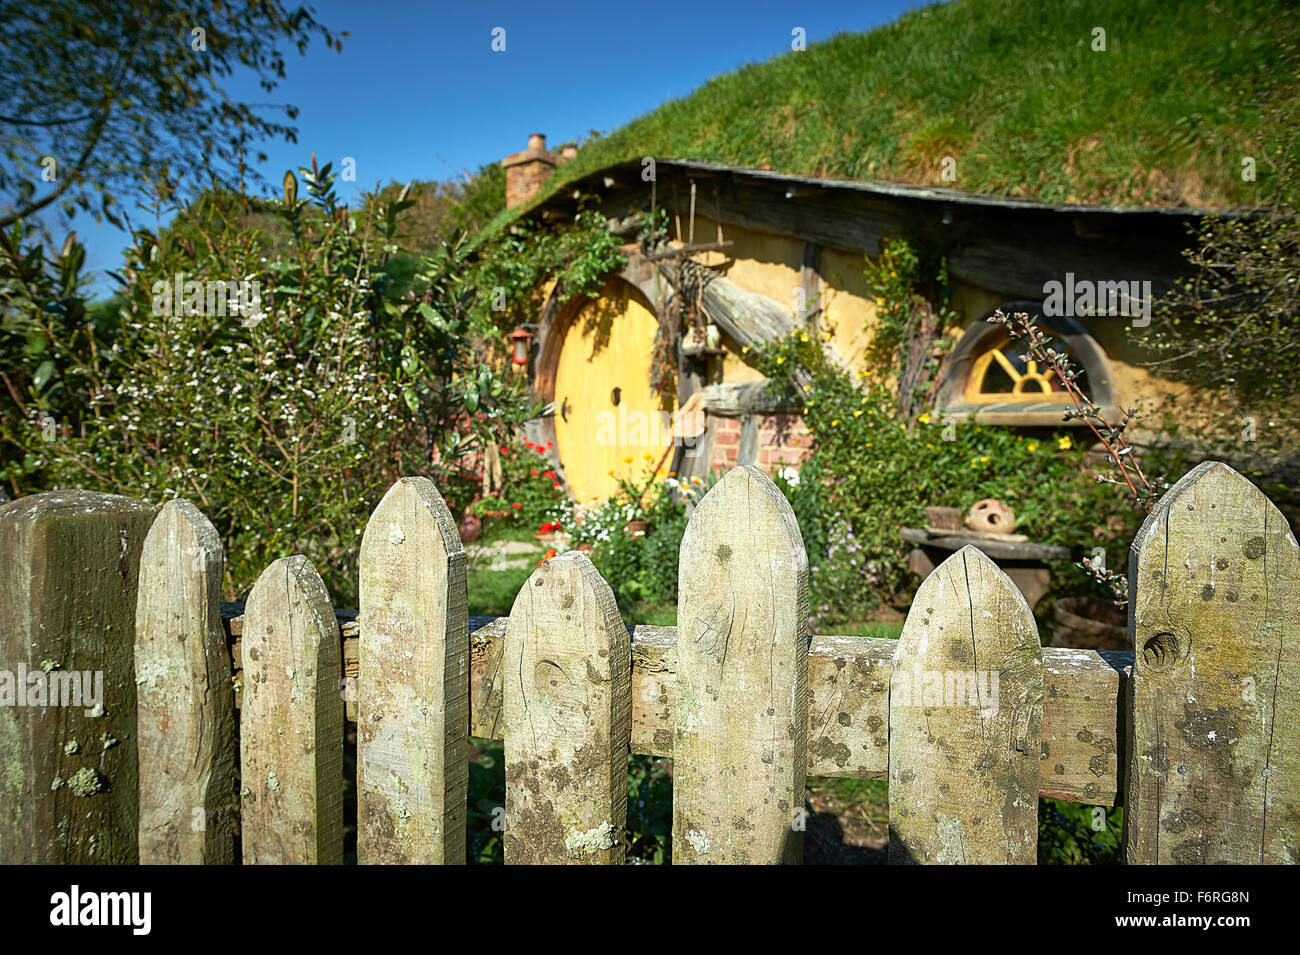 Fence detail with hobbit home in background. Hobbiton New Zealand - Stock Image